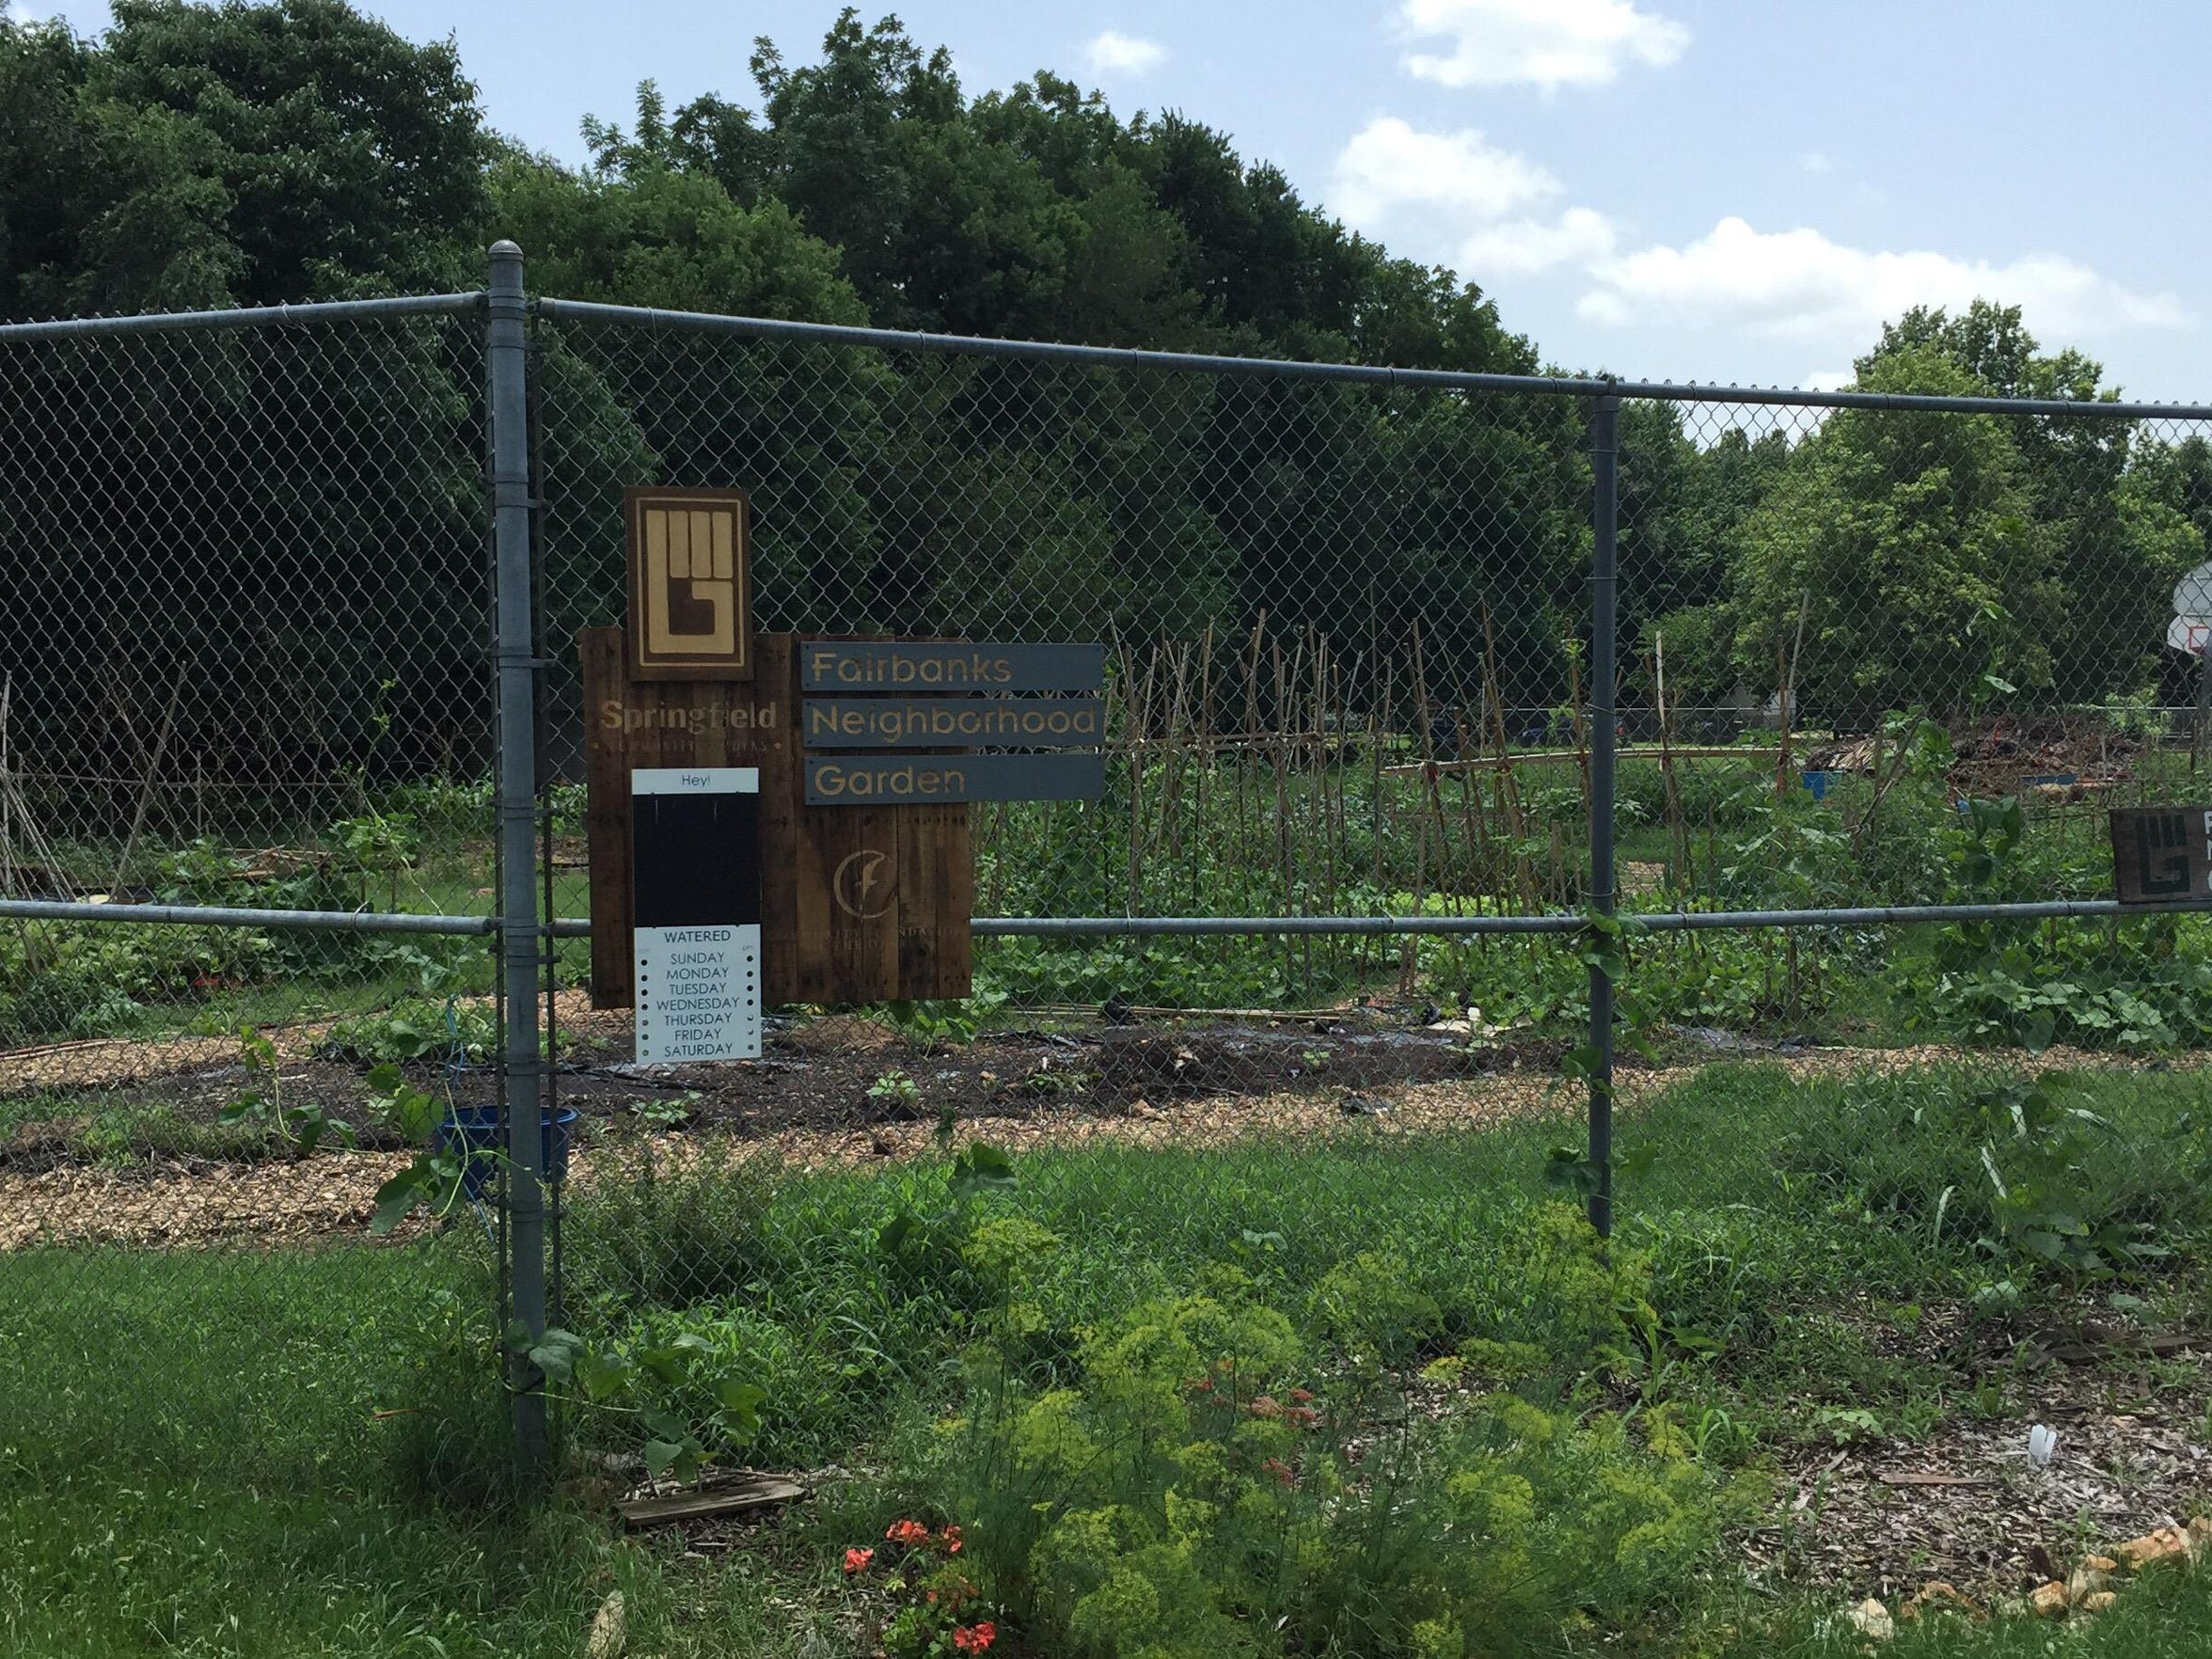 A community garden sits next to the old Fairbanks school,